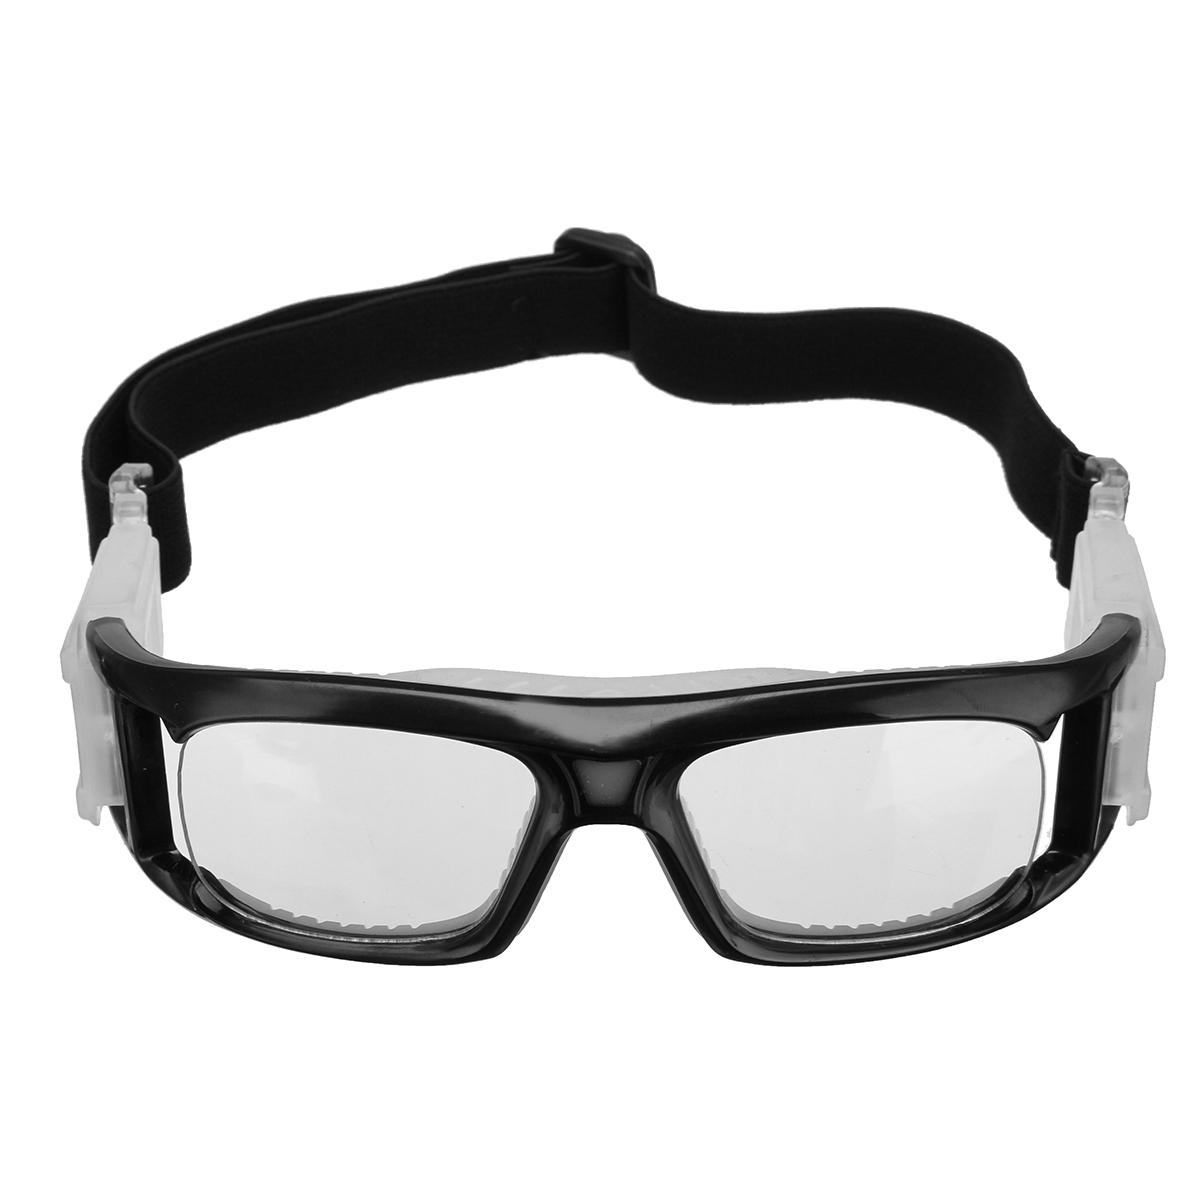 52005fb0c Outdoor Climbing Sports Glasses UV Protection Goggles Windproof Prism  Spectacles COD